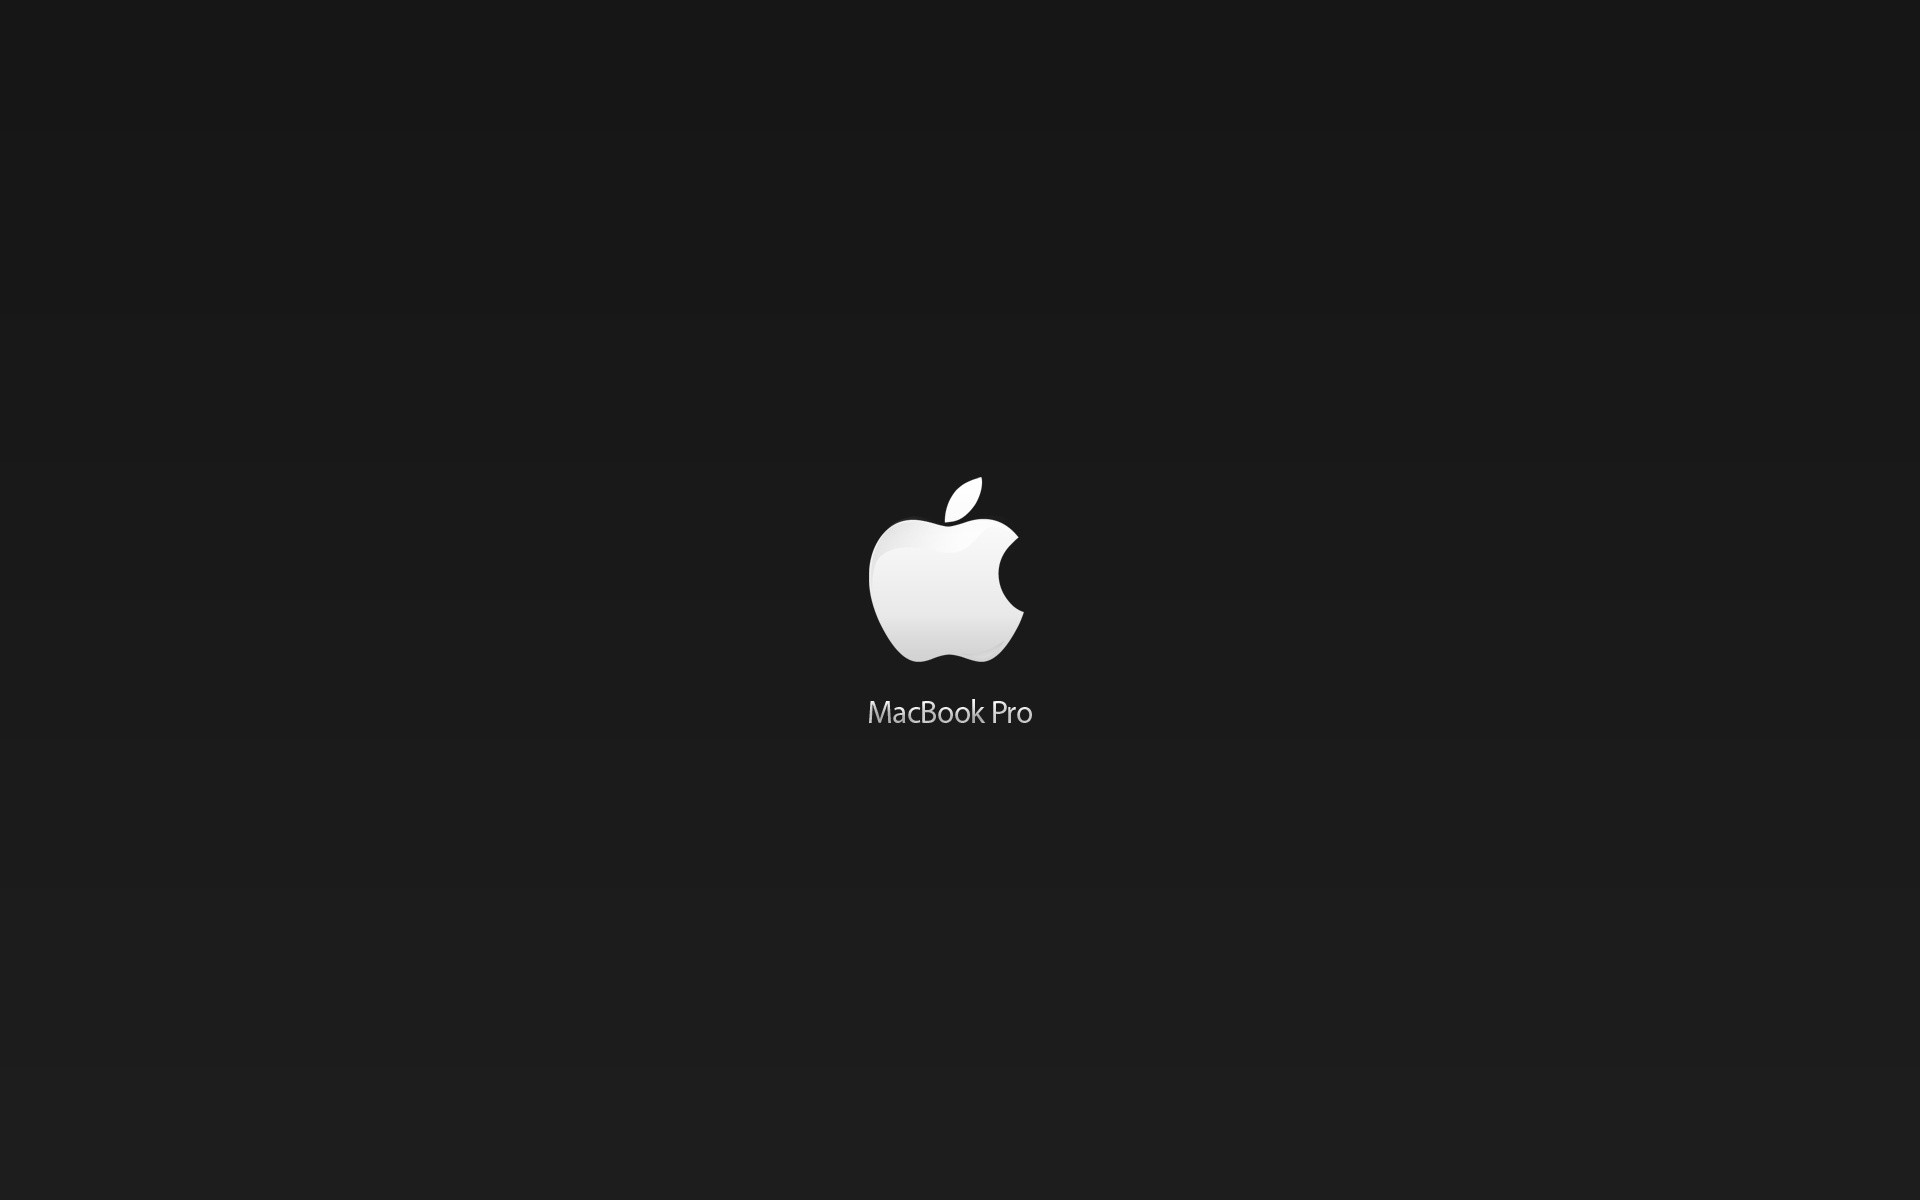 Apple Mac Wallpapers Hd: HD Wallpapers For Mac 1280x800 ·①